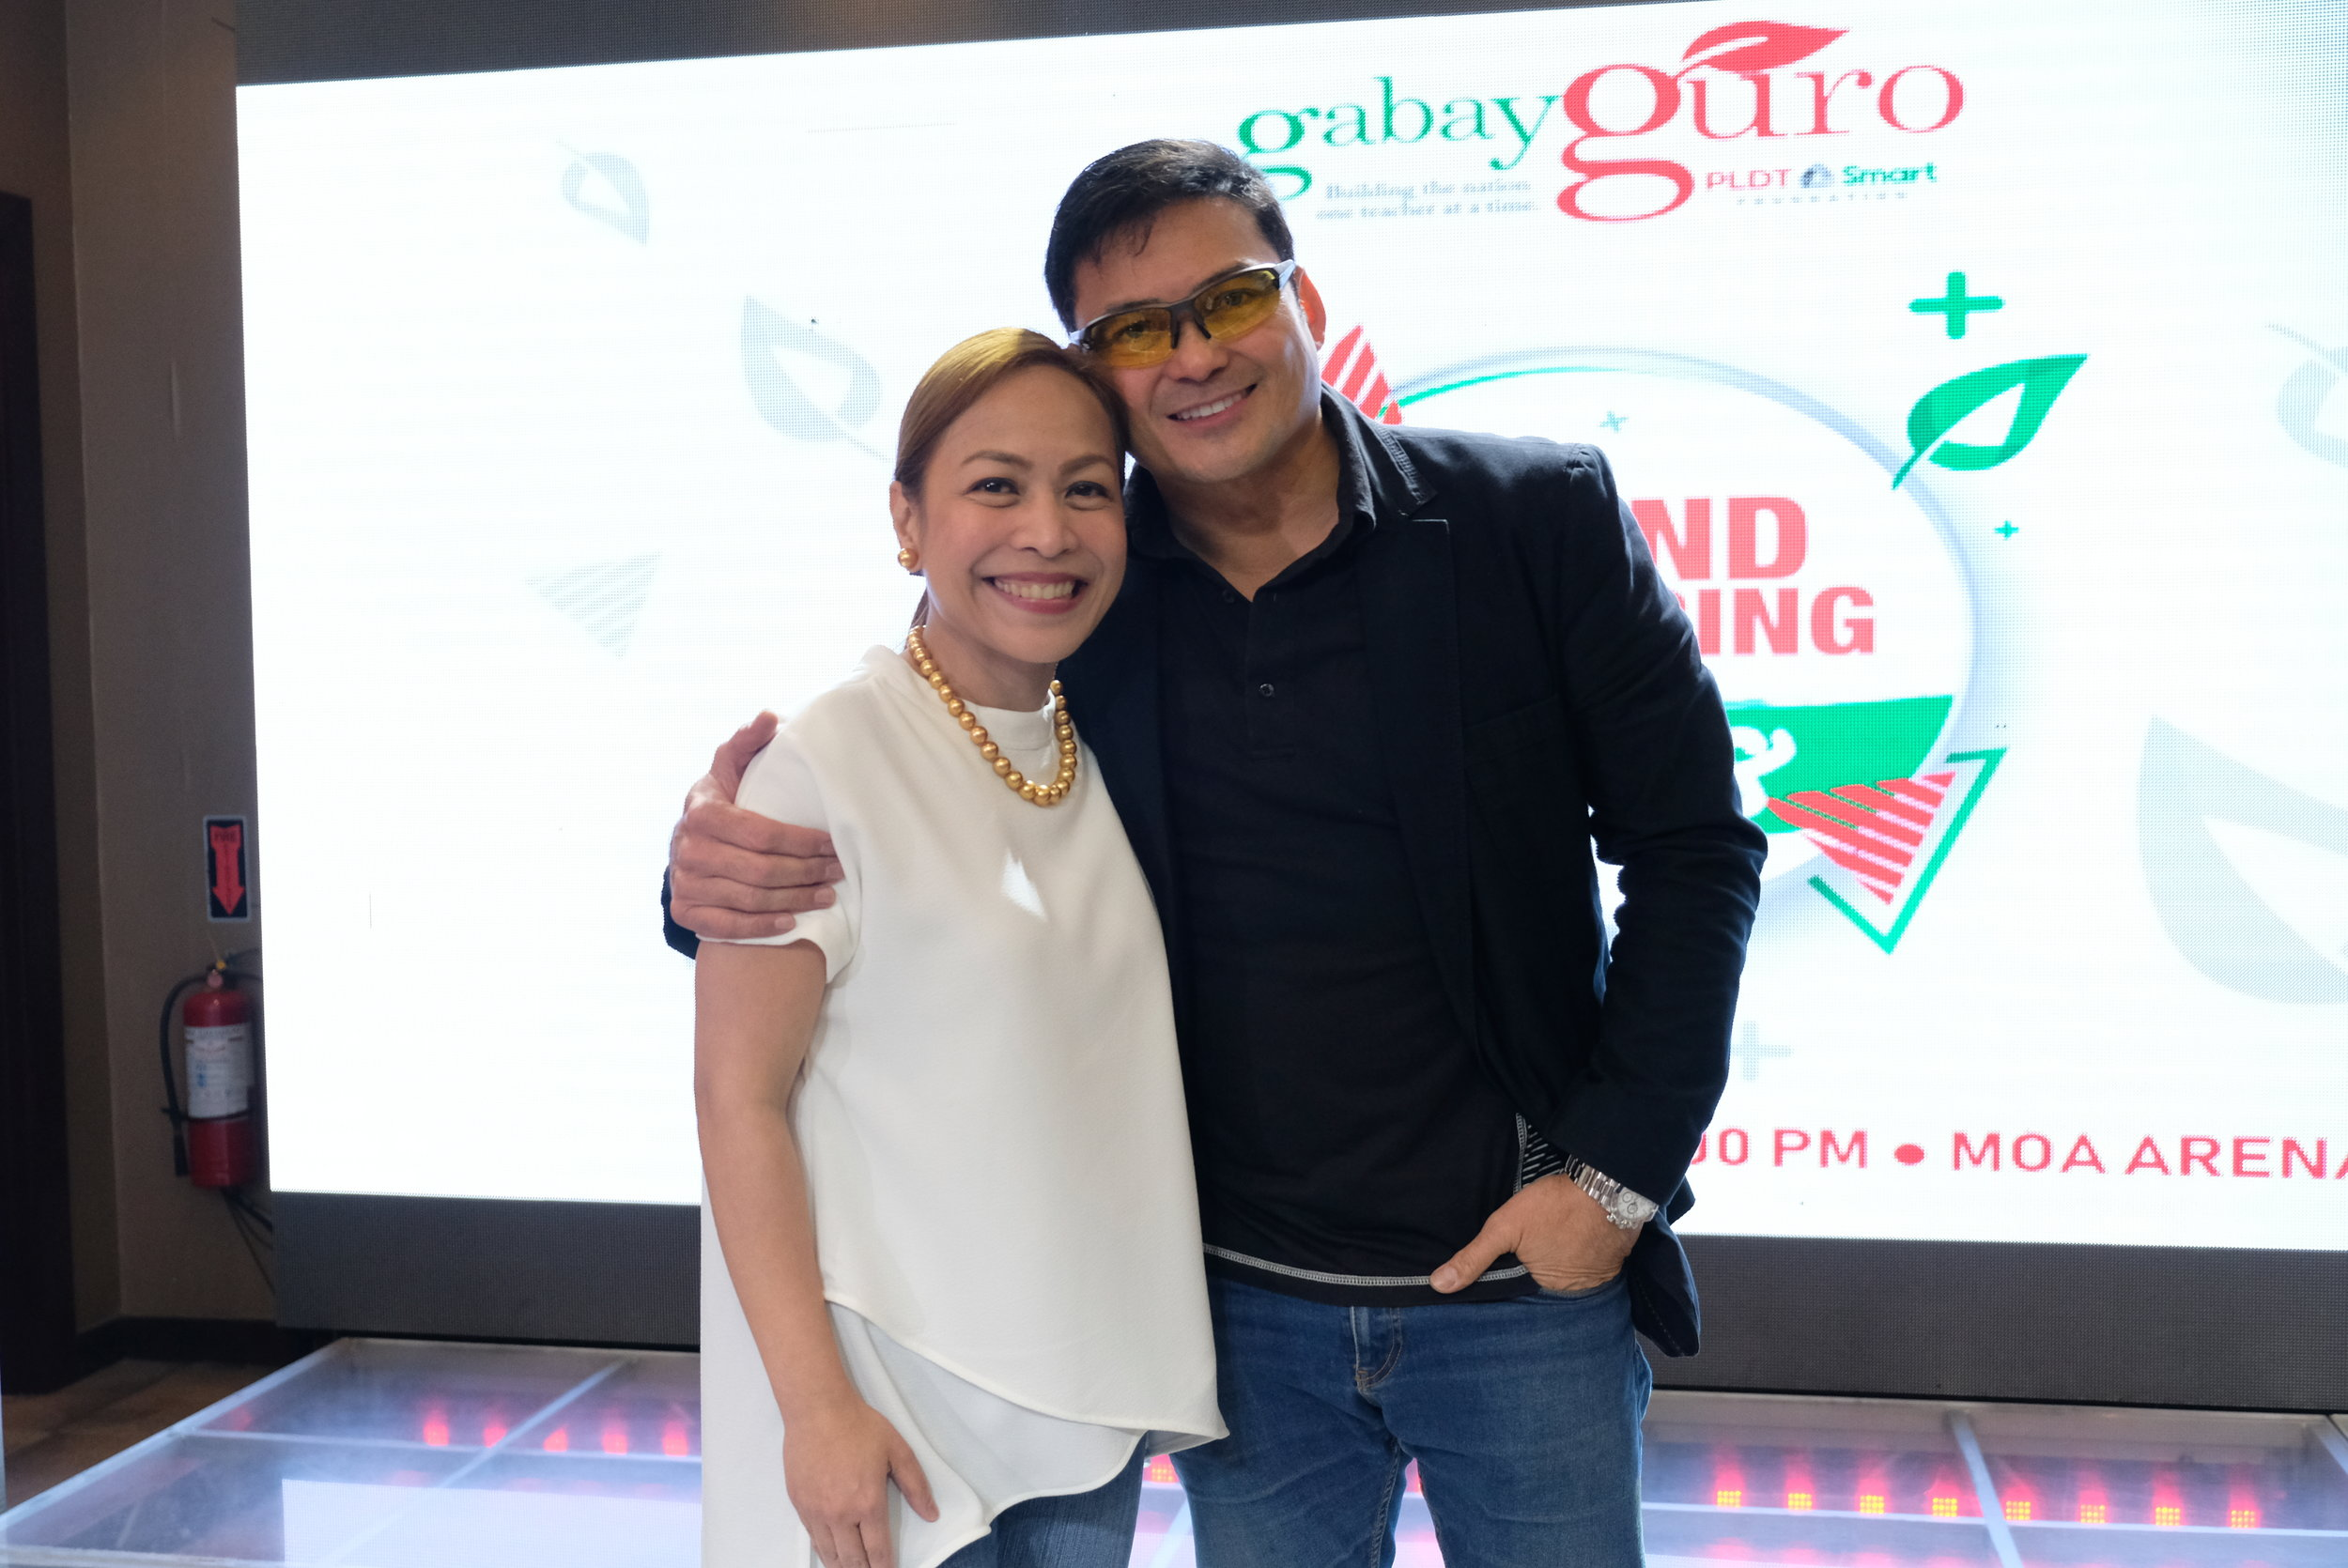 Actor Gabby Concepcion with Gabay Guro Chairman Chaye Cabal-Revilla at the media gathering for Gabay Guro's Grand Gathering at MOA on Sept. 23, 2 p.m.